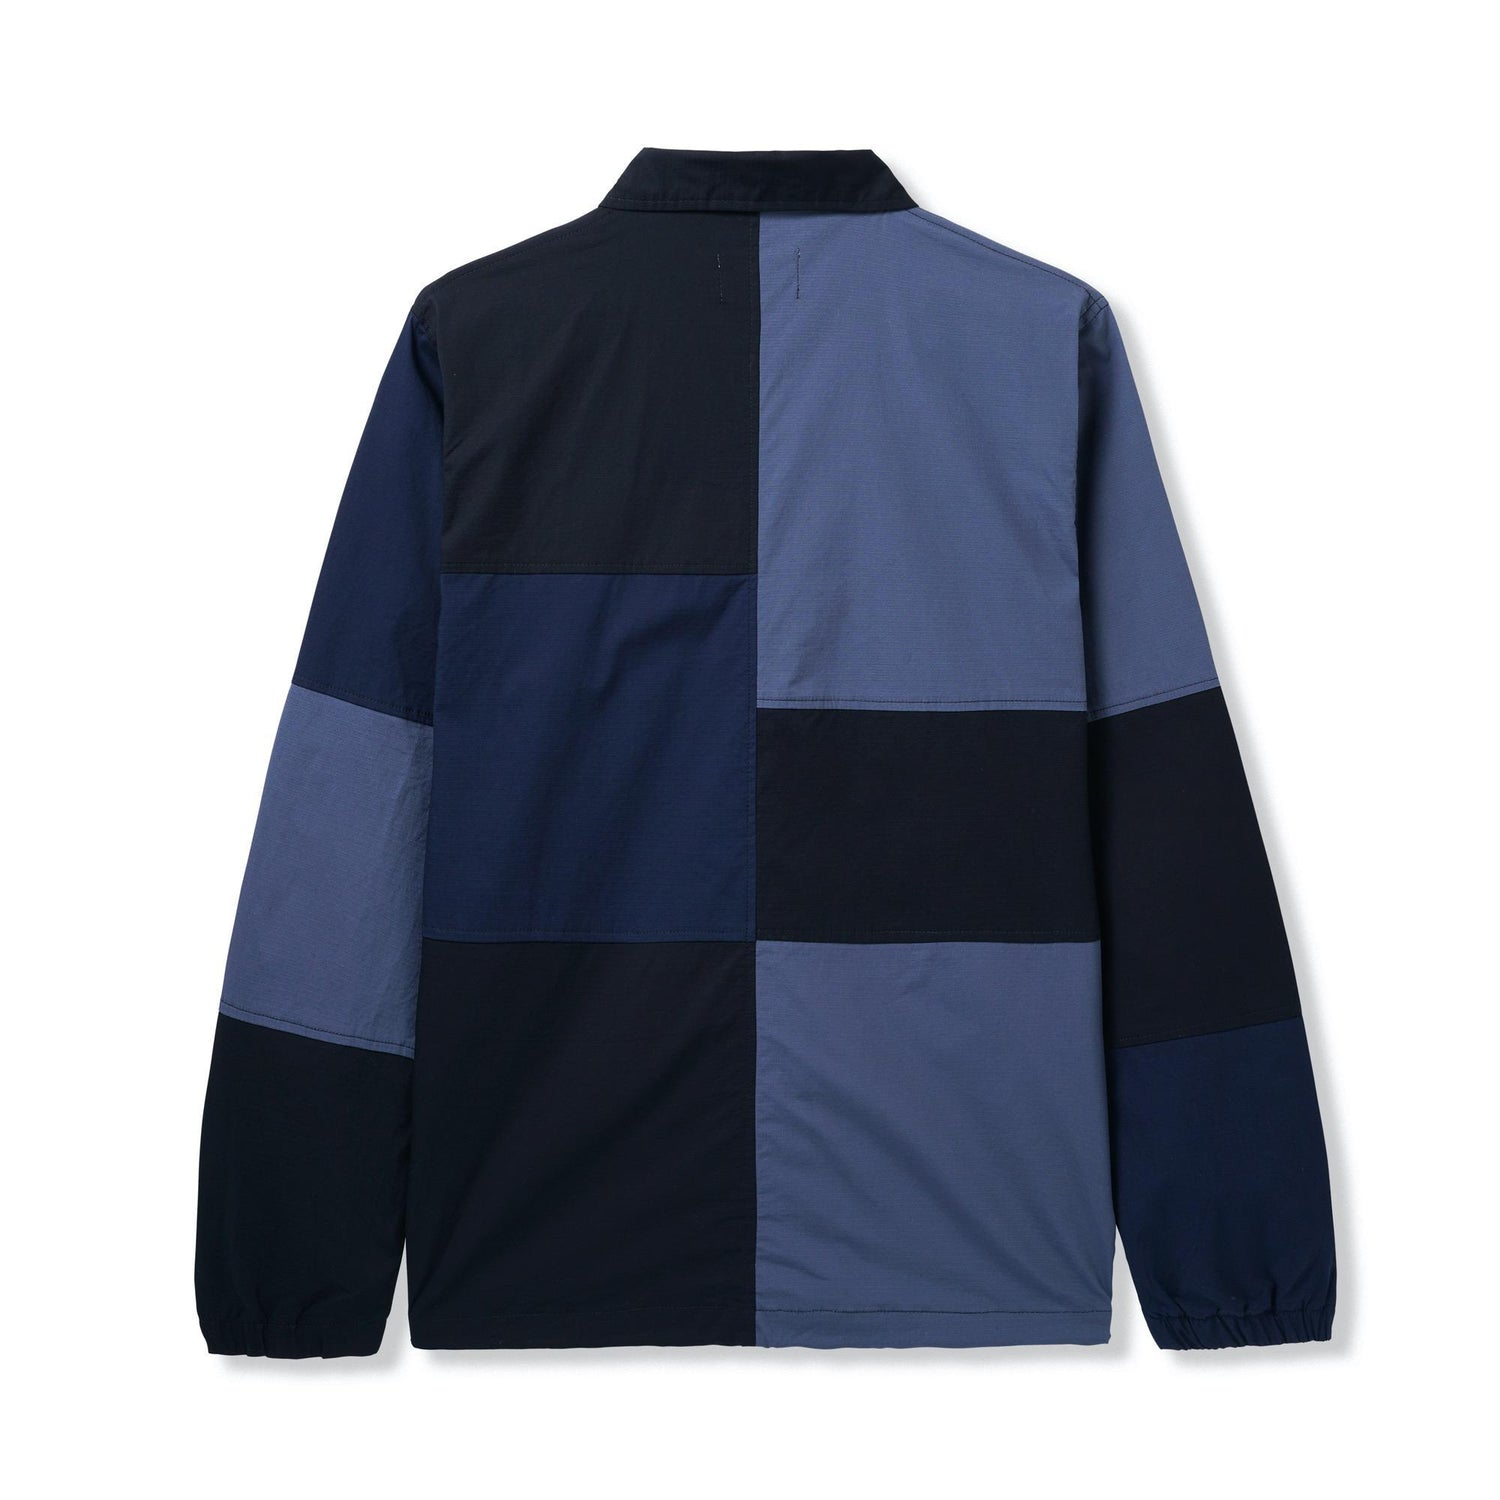 Patchwork Jacket, Navy